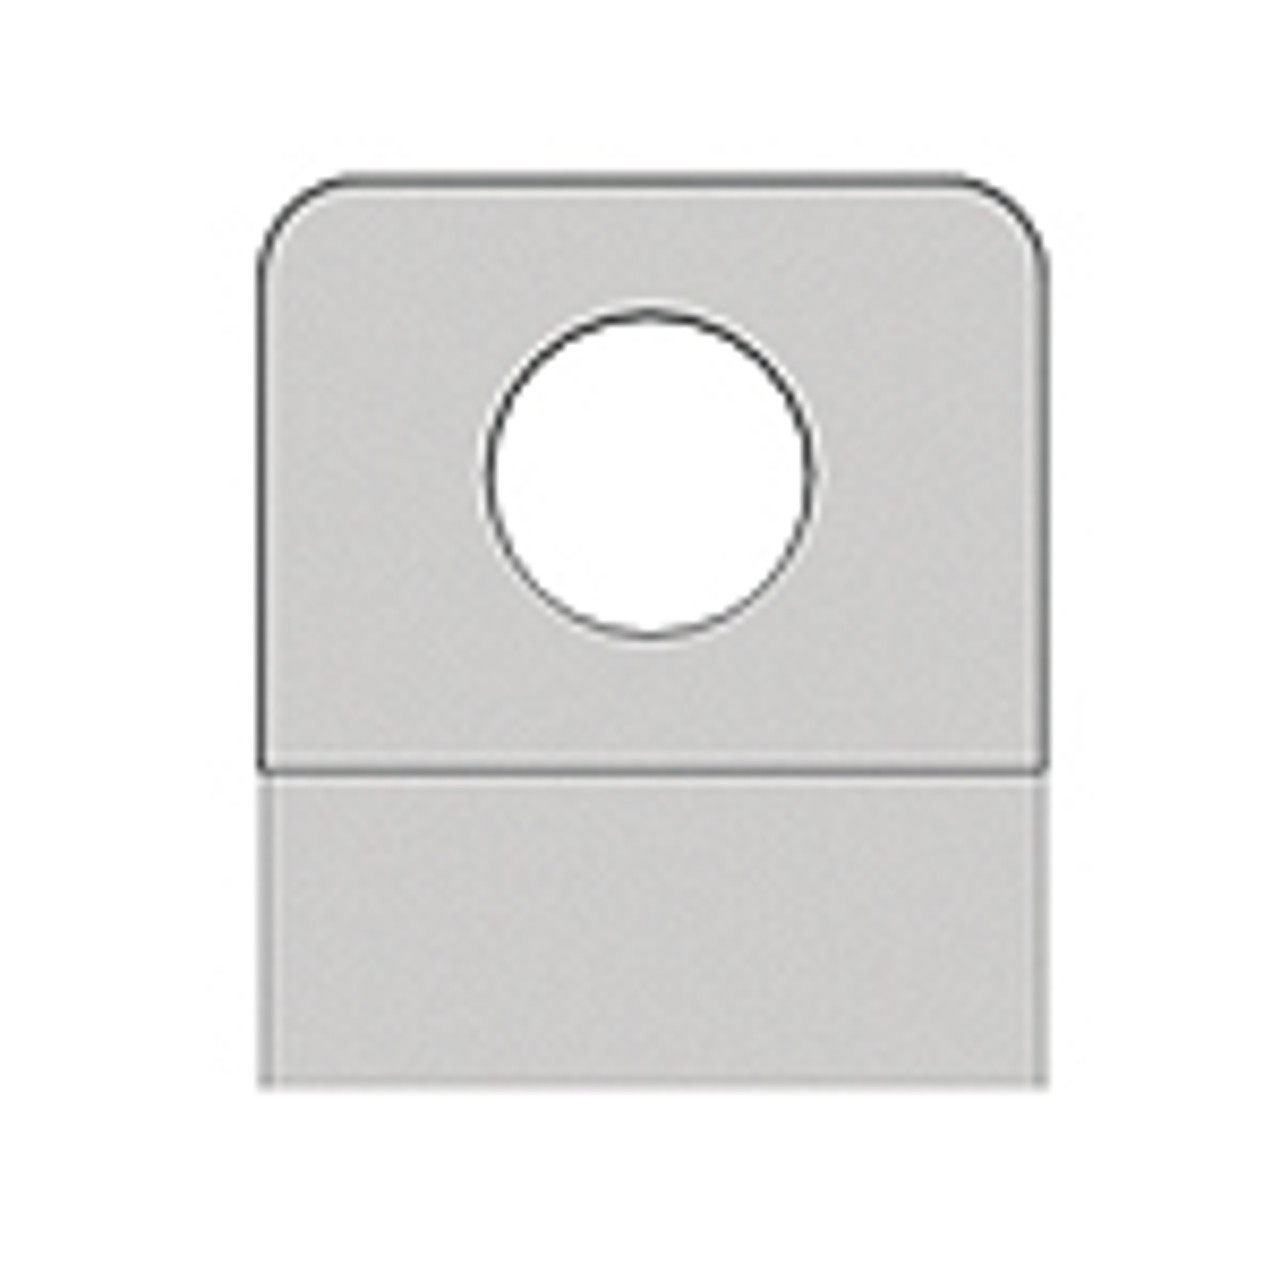 Round Hole Hang Tab - With Adhesive - 7/16 Diameter Hole